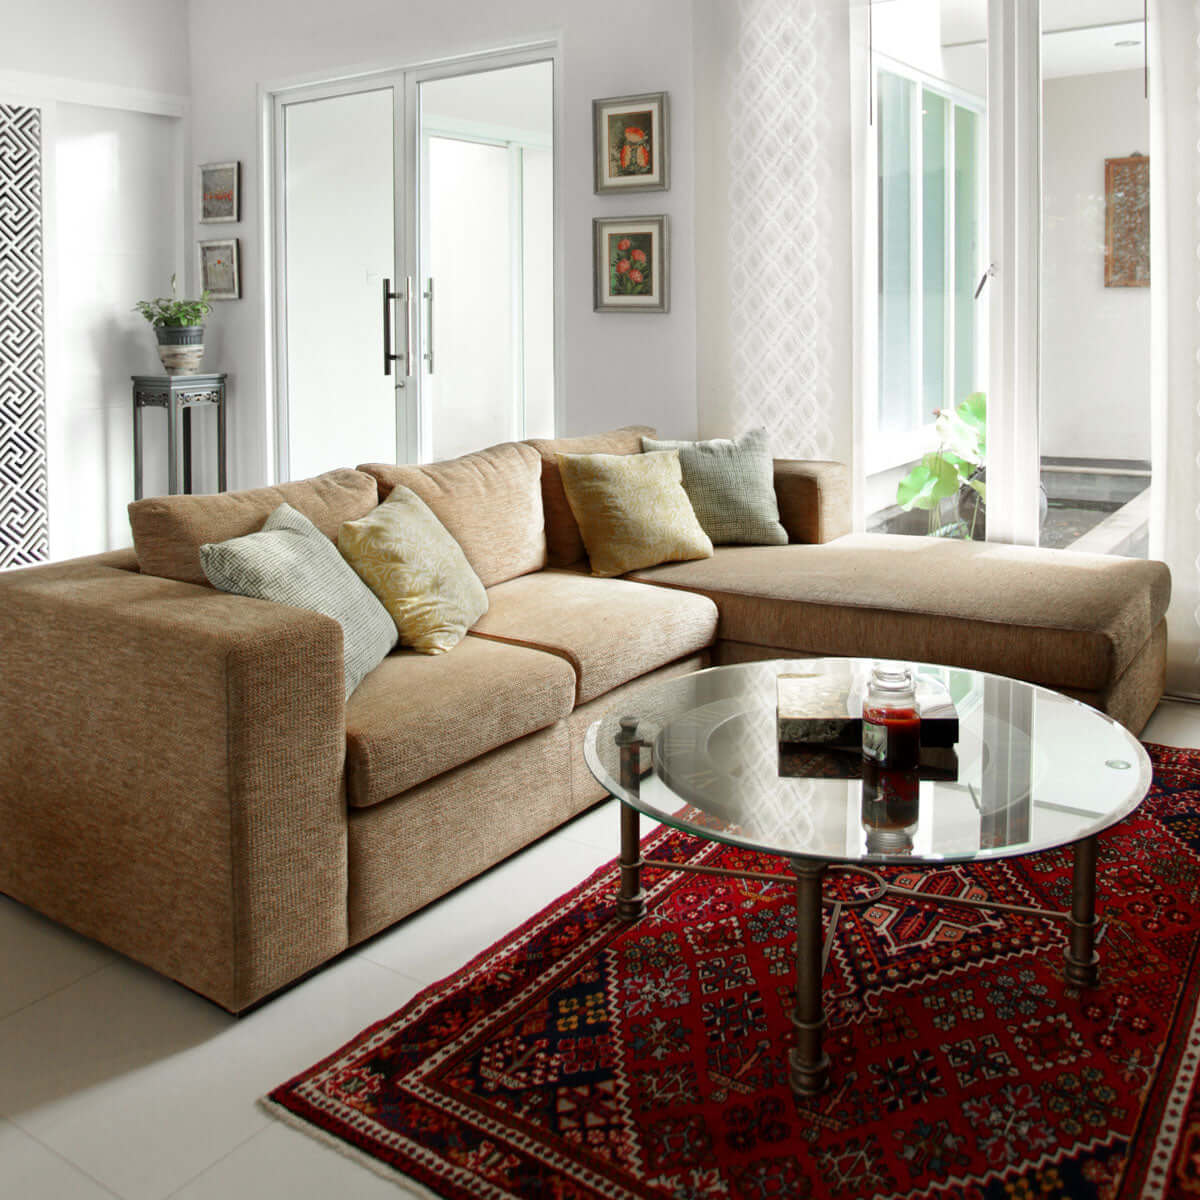 Tribeca L-shape 2-seat sofa - Vinoti Living